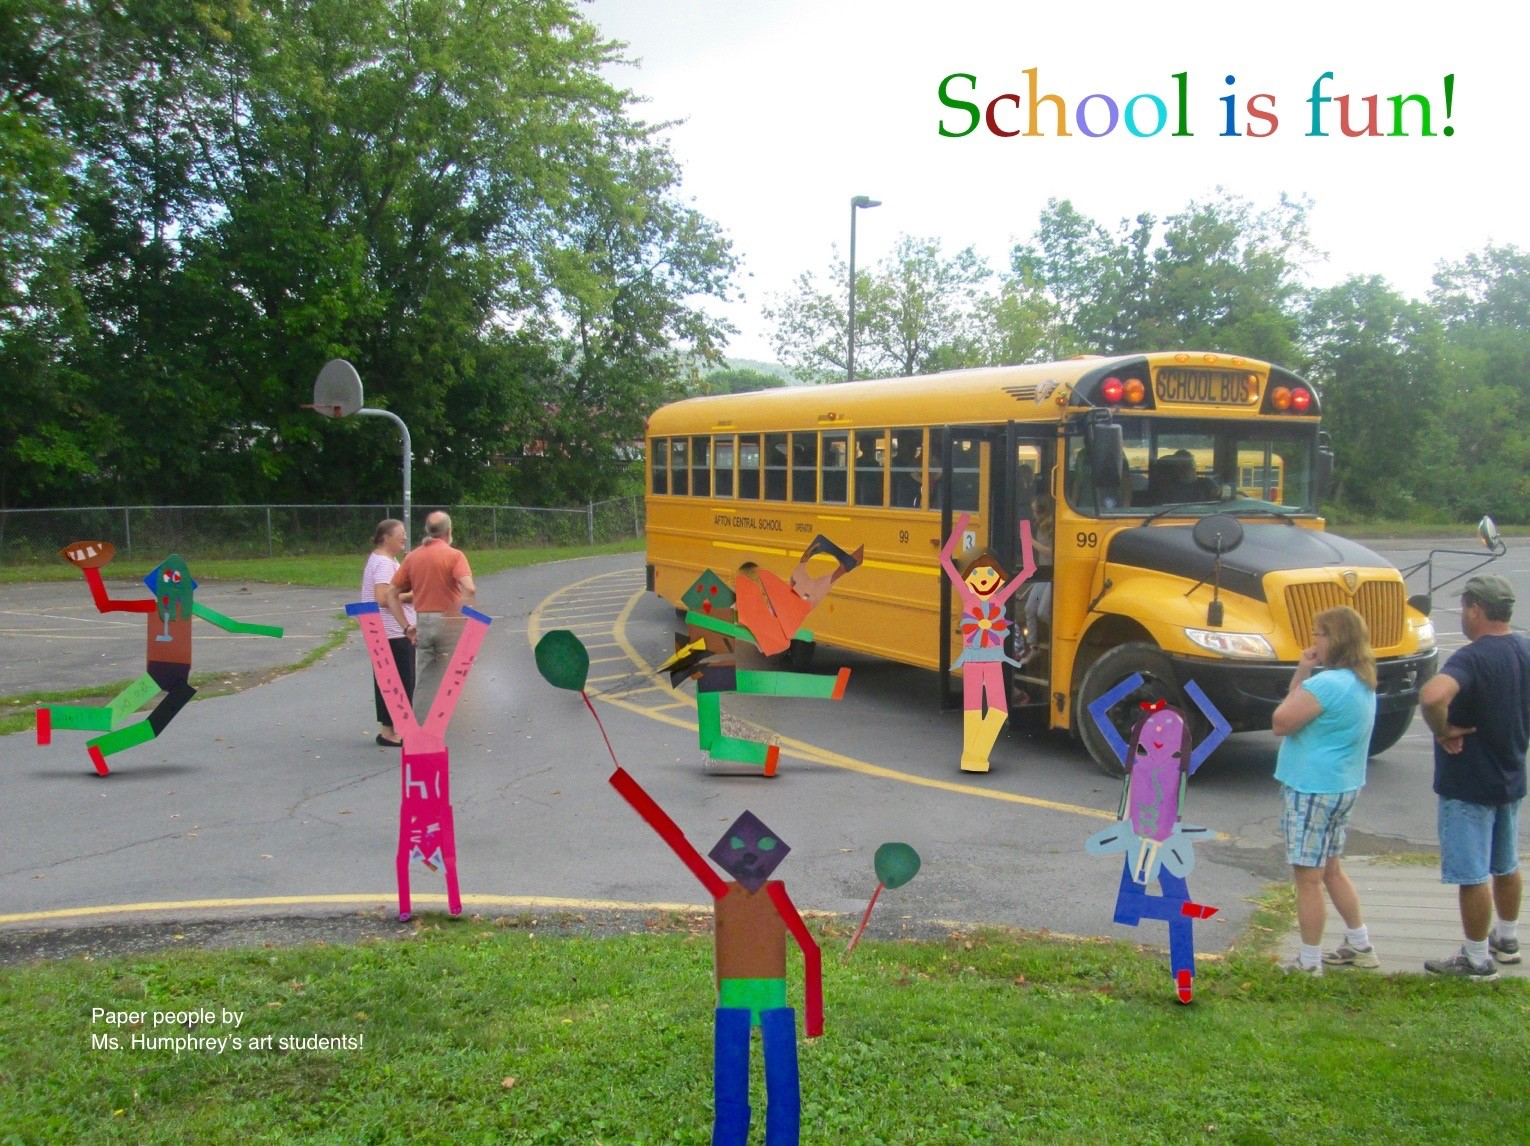 ACSLIB Poster: Playful image of elementary paper figures boarding a school bus.